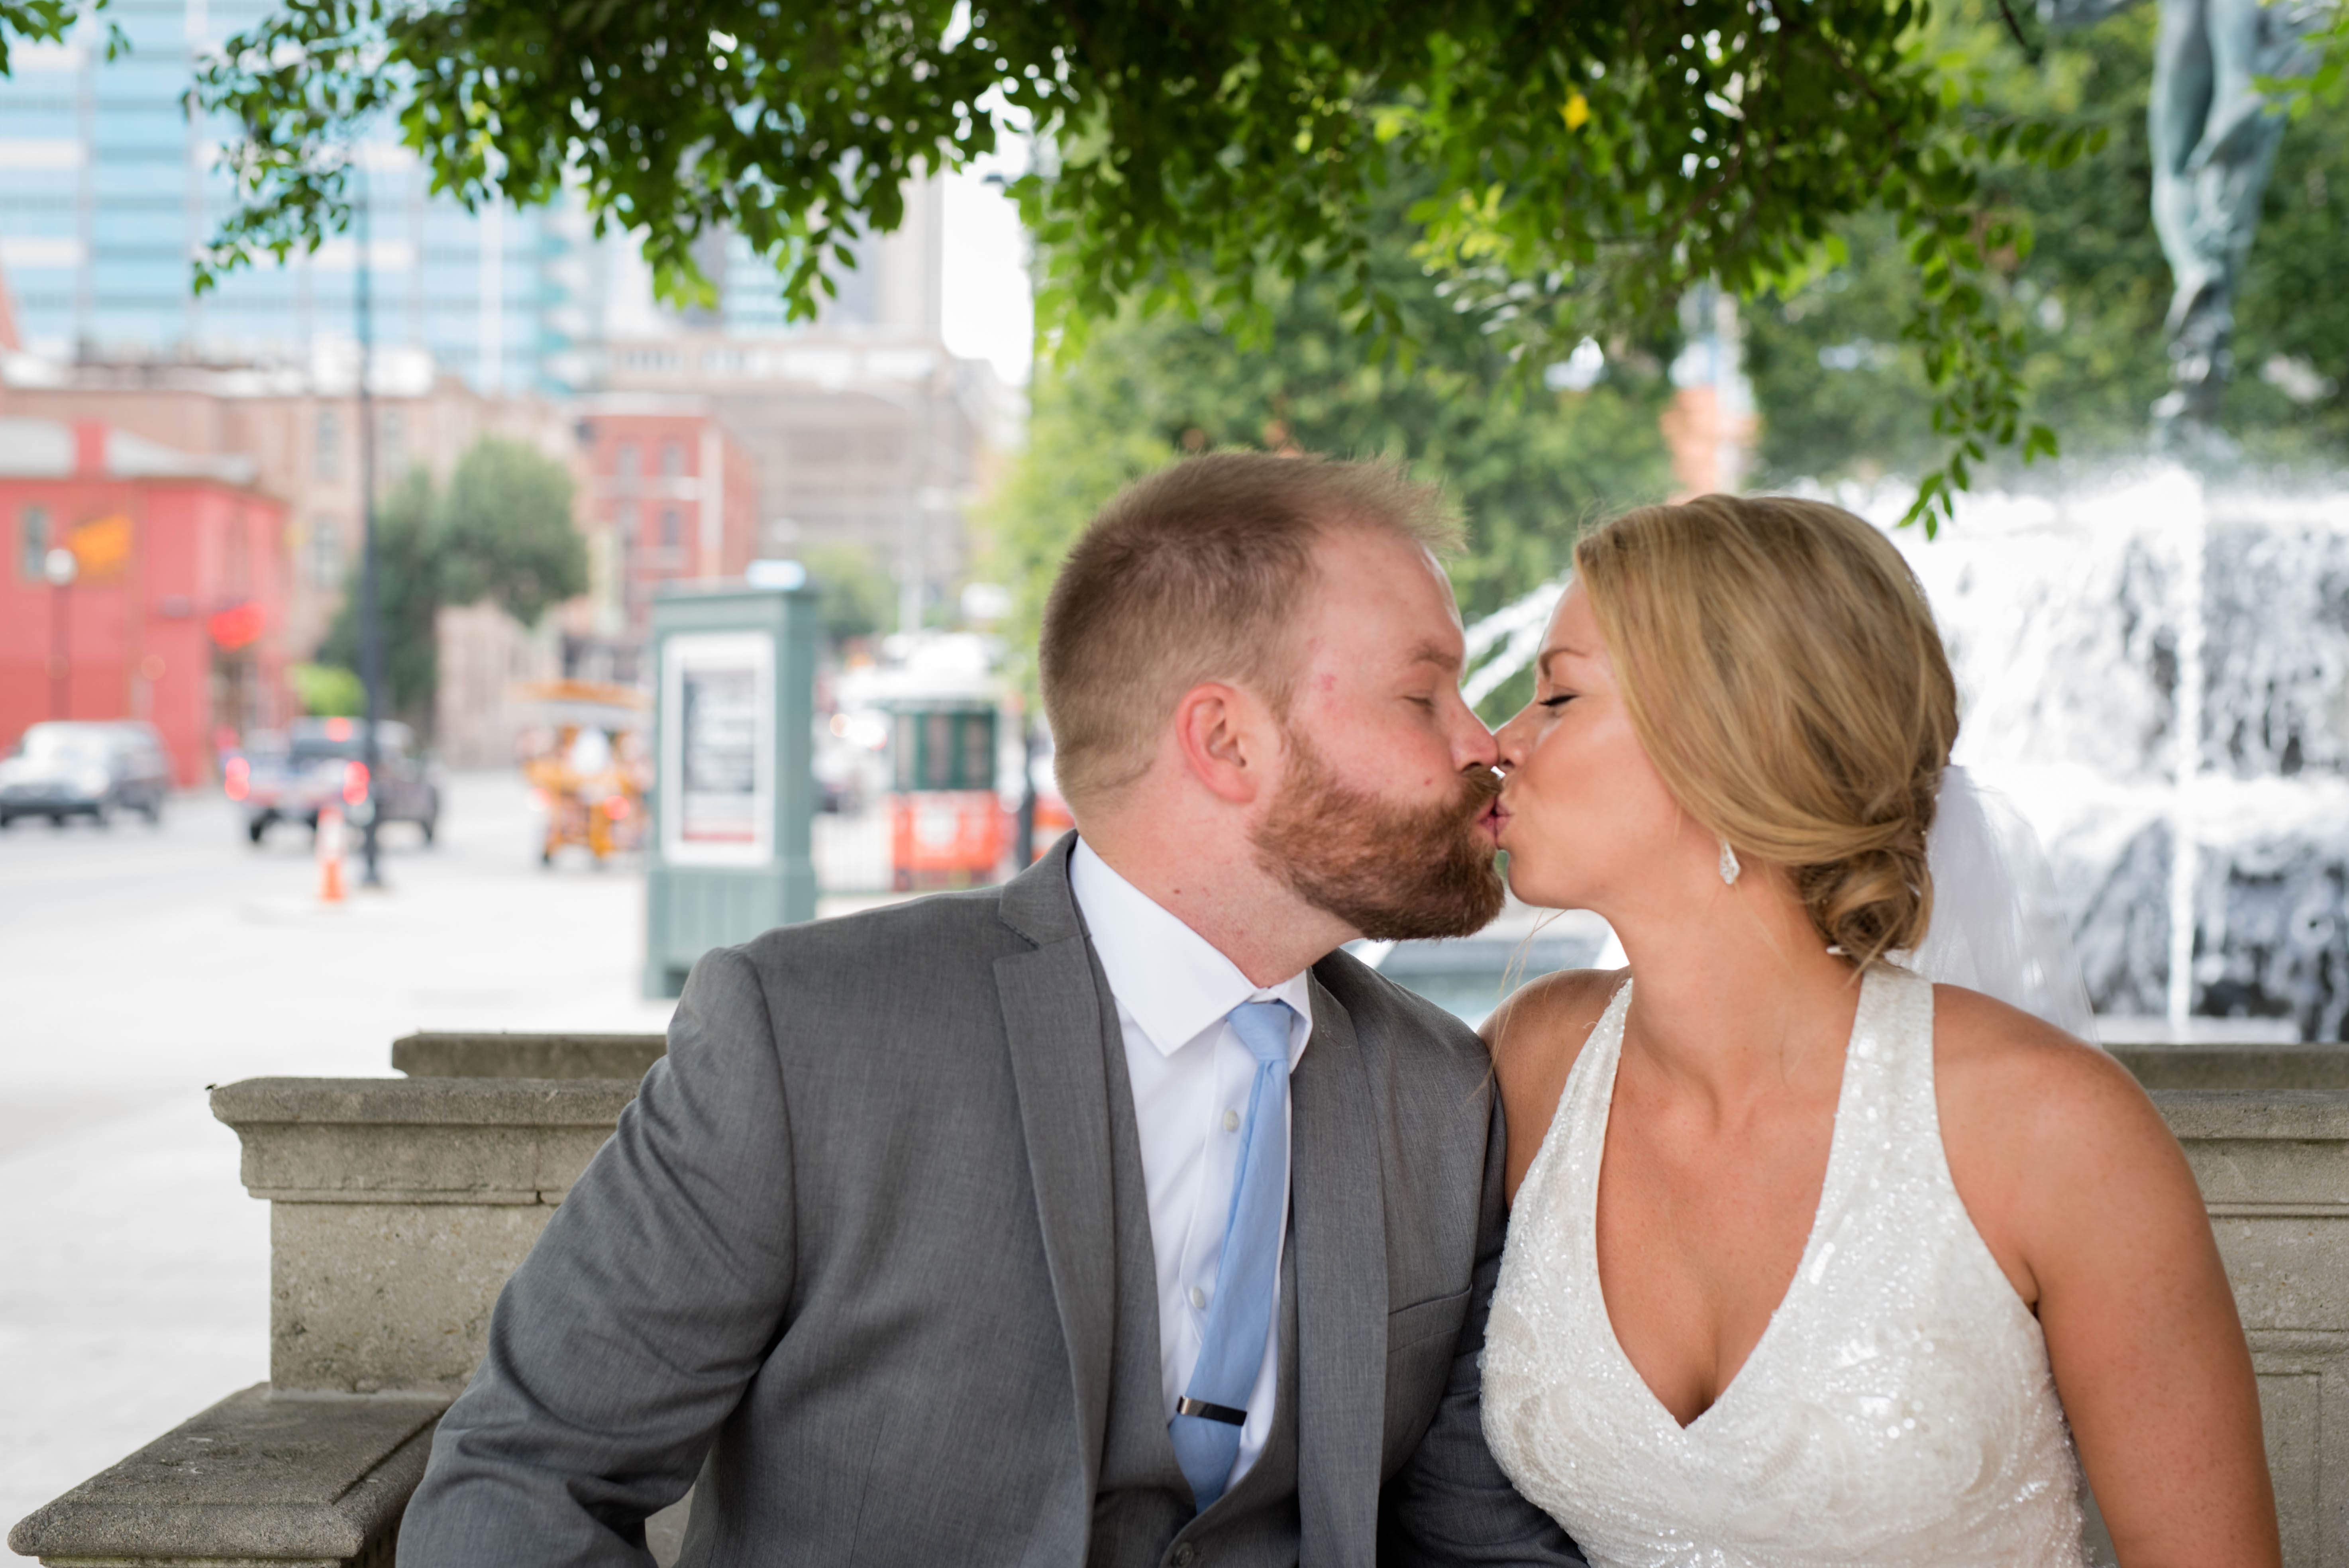 5 reasons why wedding websites are a must have for destination